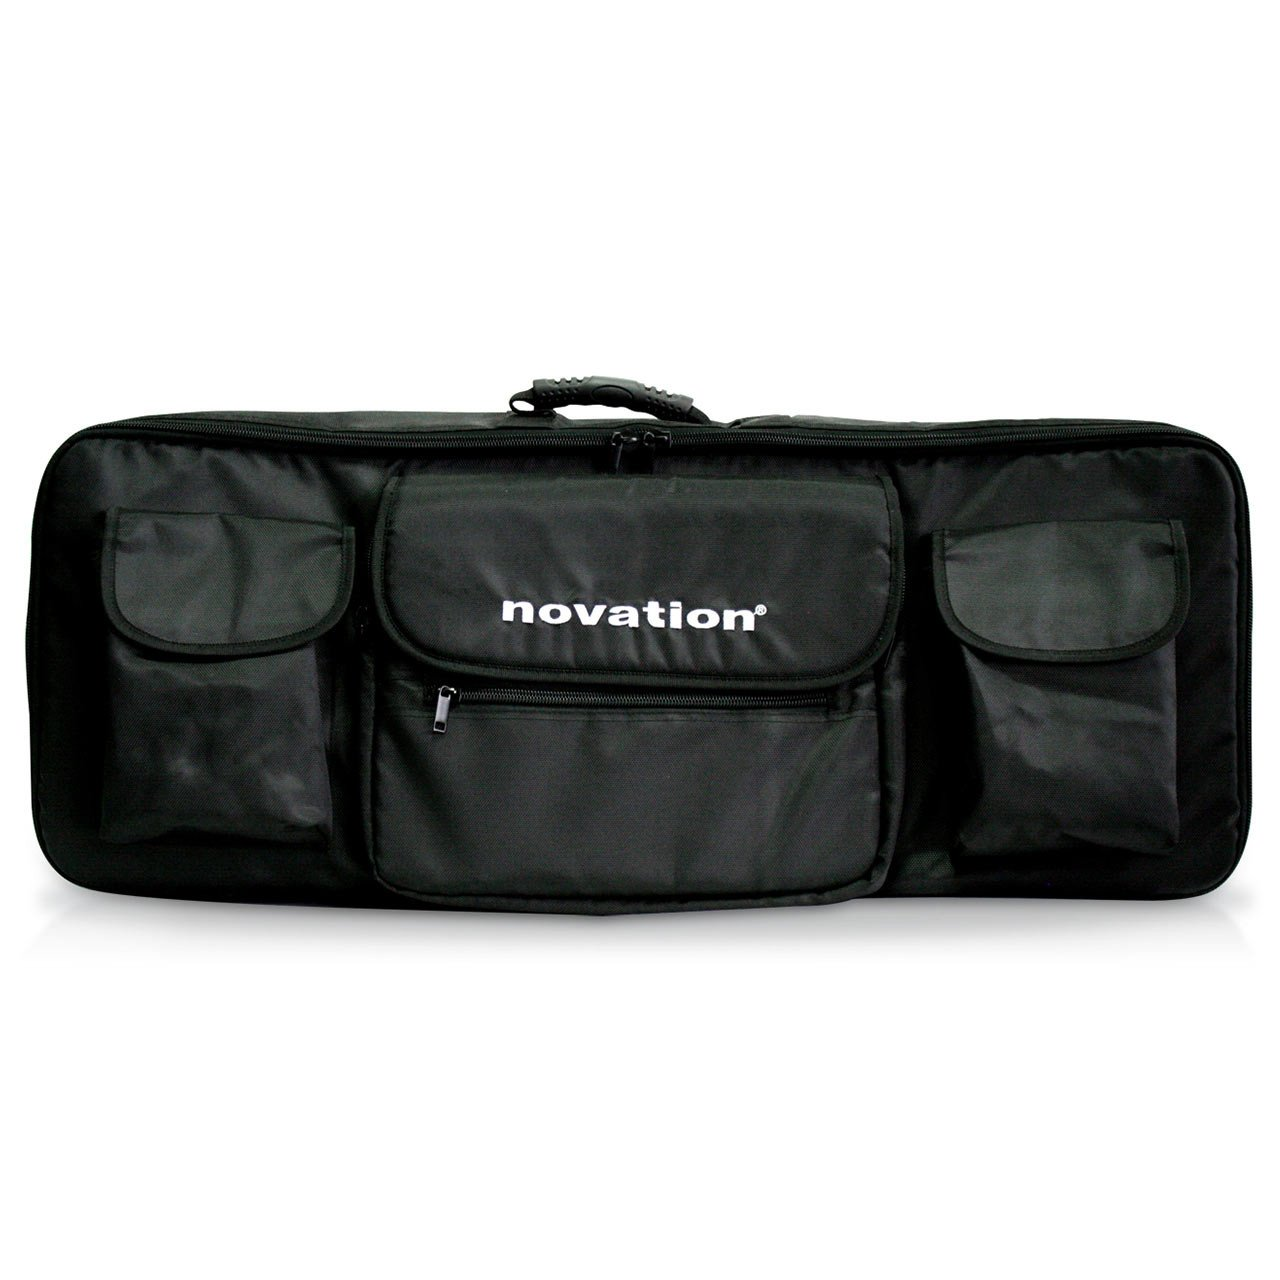 Novation 49 Key Keyboard Gig Bag